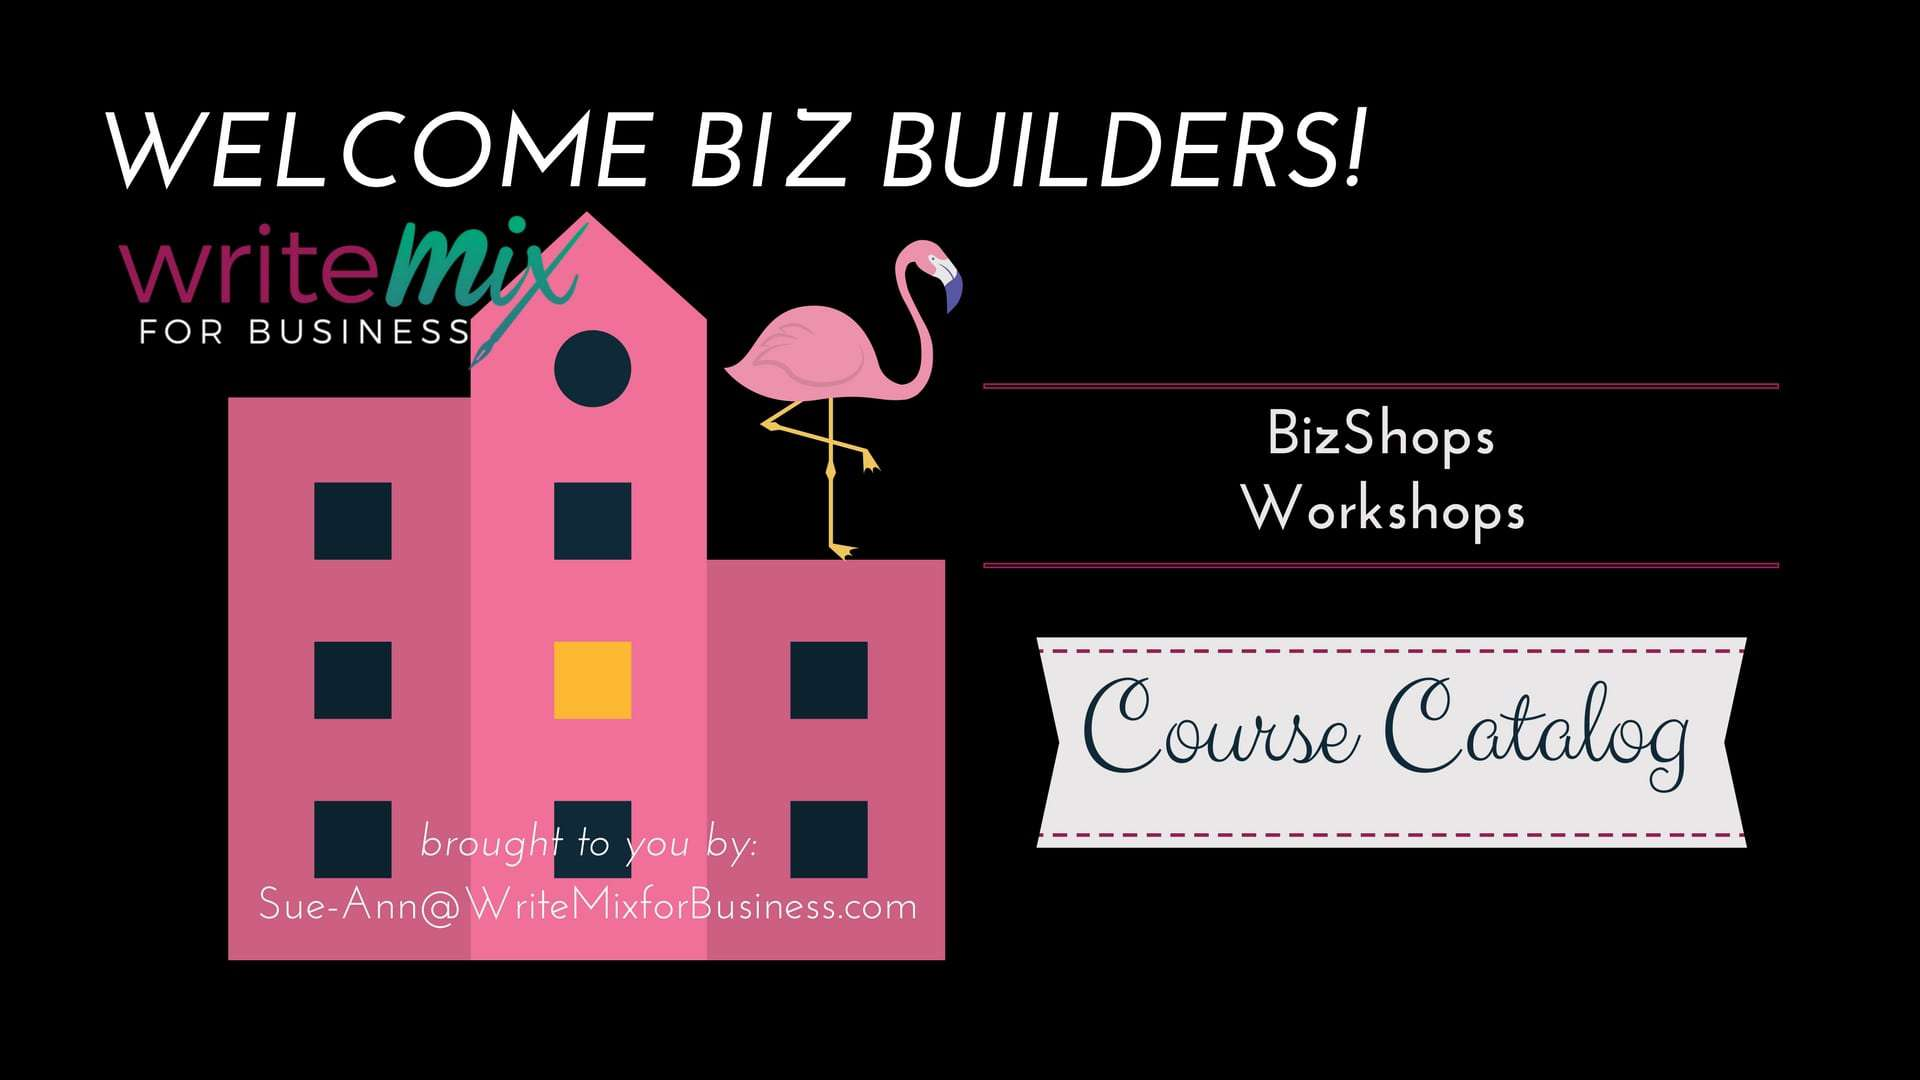 BizShops Course Catalog Visual showing biz building and funky flamingo mix with write mix for business